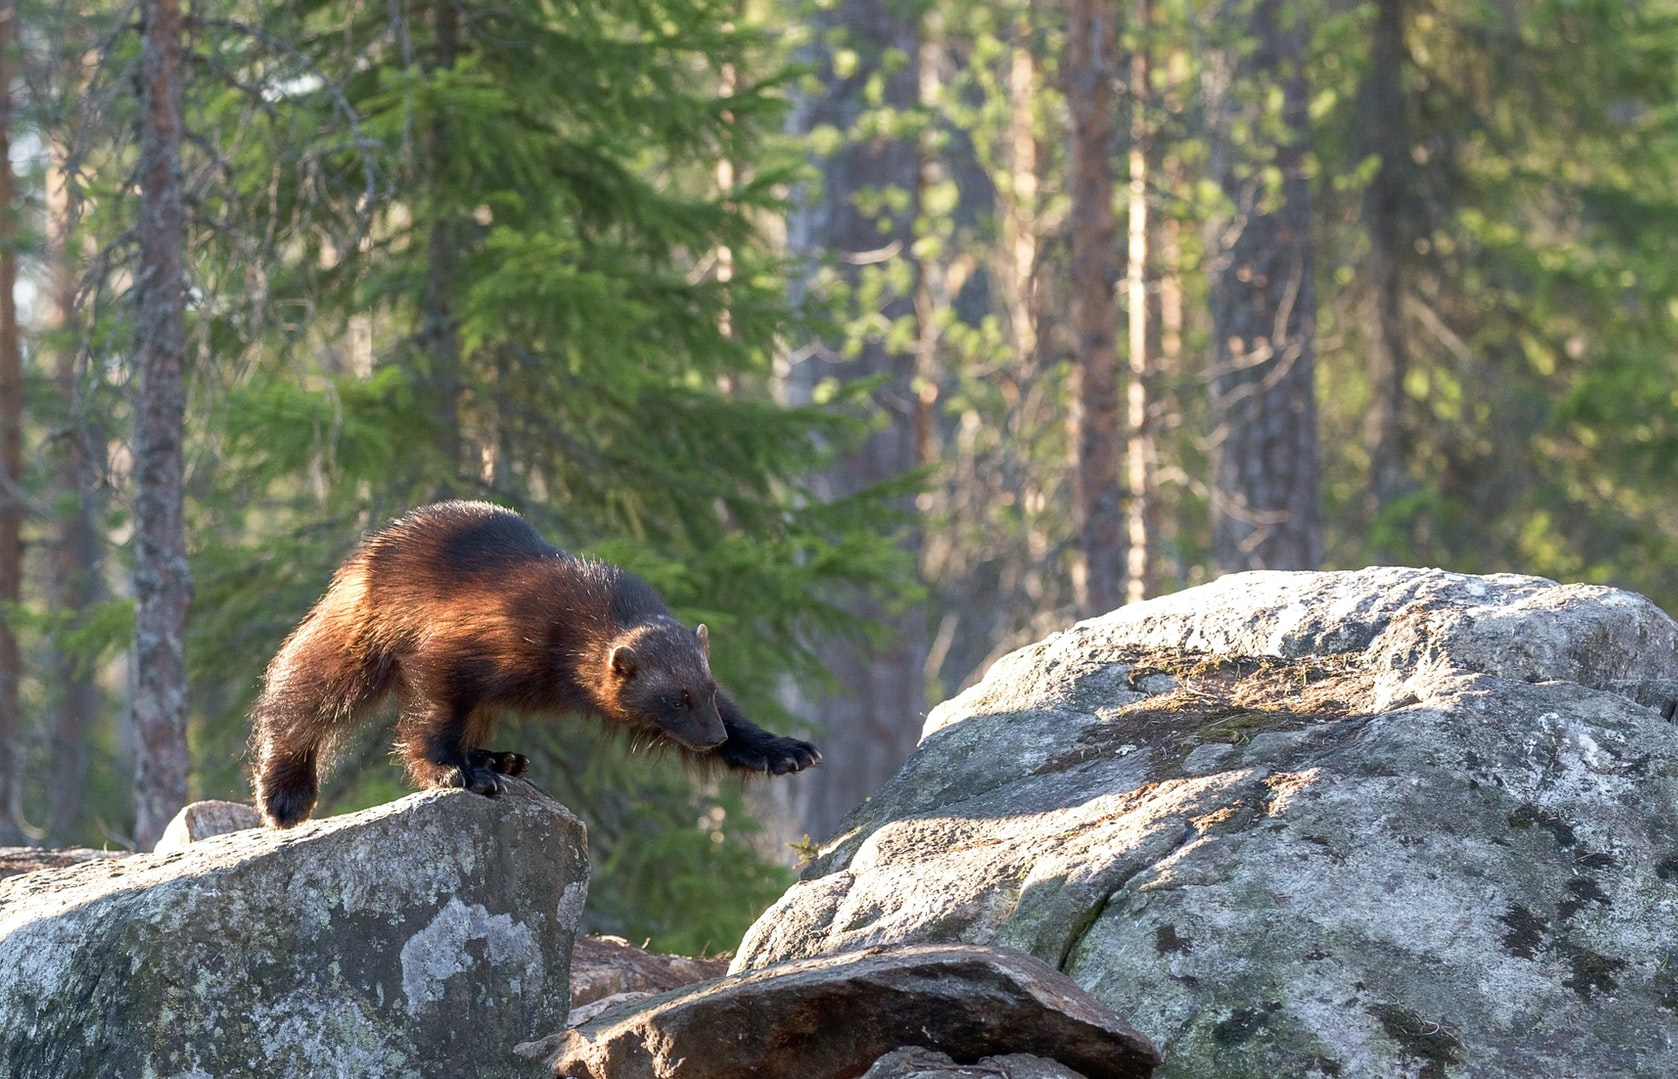 US Officials: Climate Change Not a Threat to Rare Wolverine